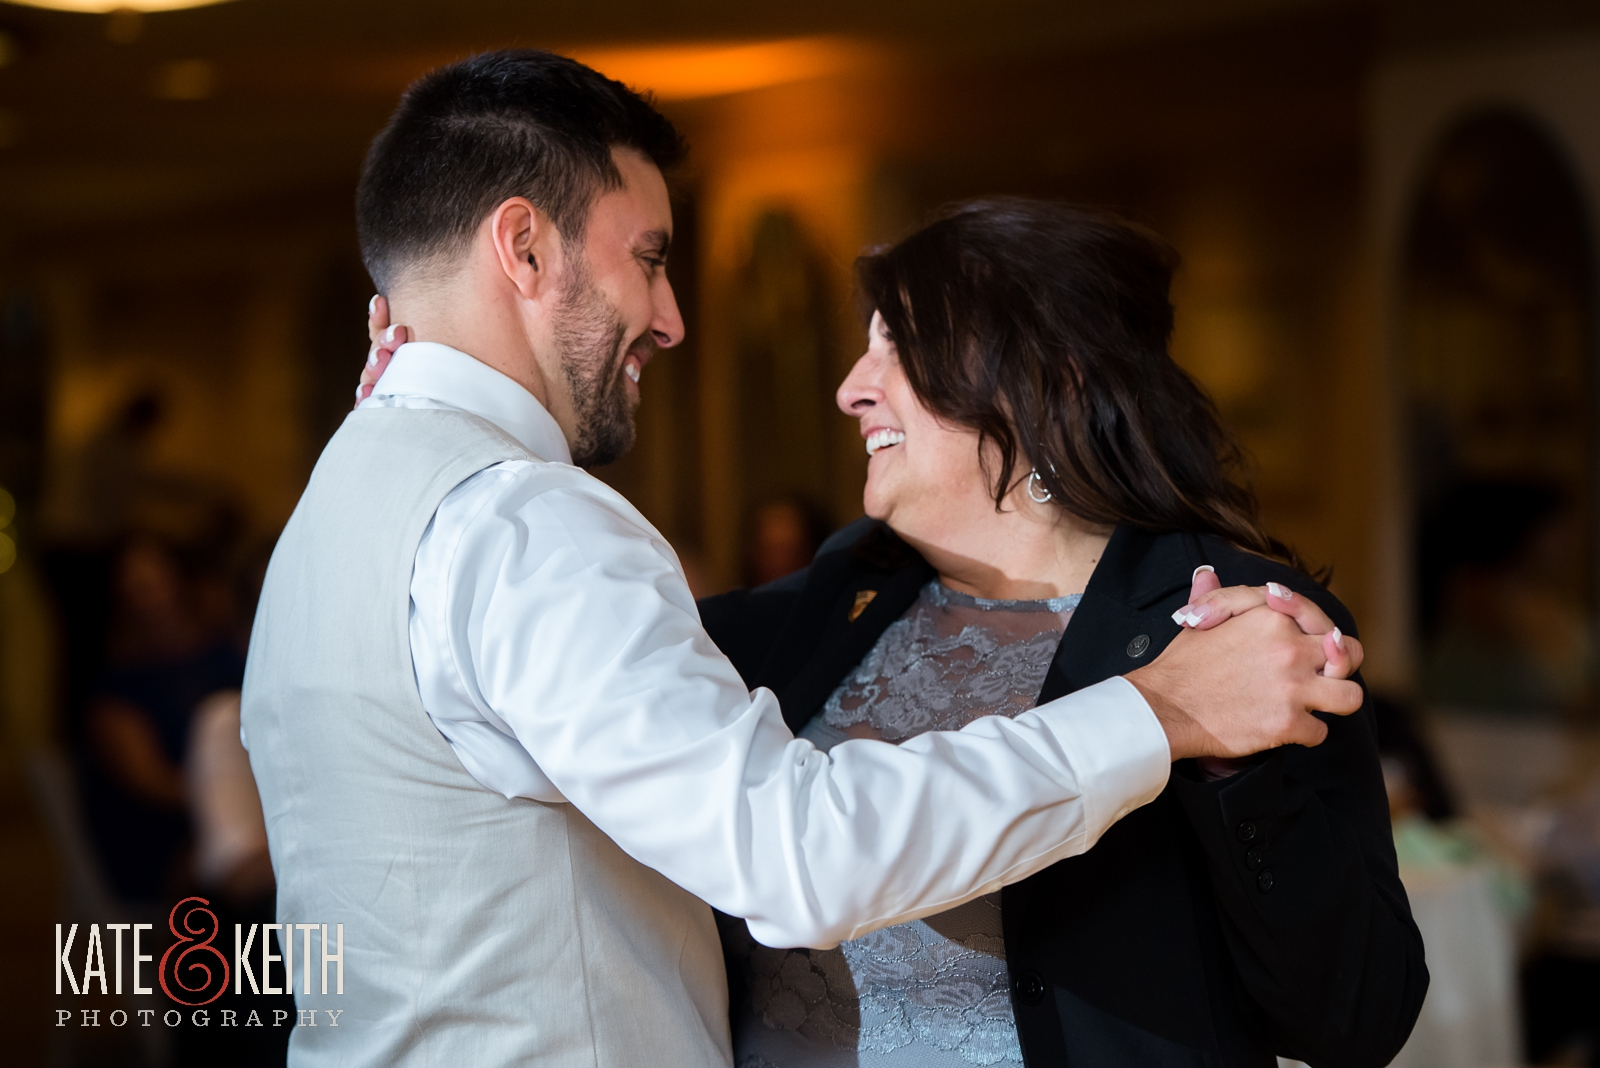 New Hampshire, Lakes Region, Lake Winnipesaukee, The Margate Resort, wedding, outdoor wedding, lakeside wedding, wedding reception, mother son dance, wedding dance, mother of the groom, candid wedding moment